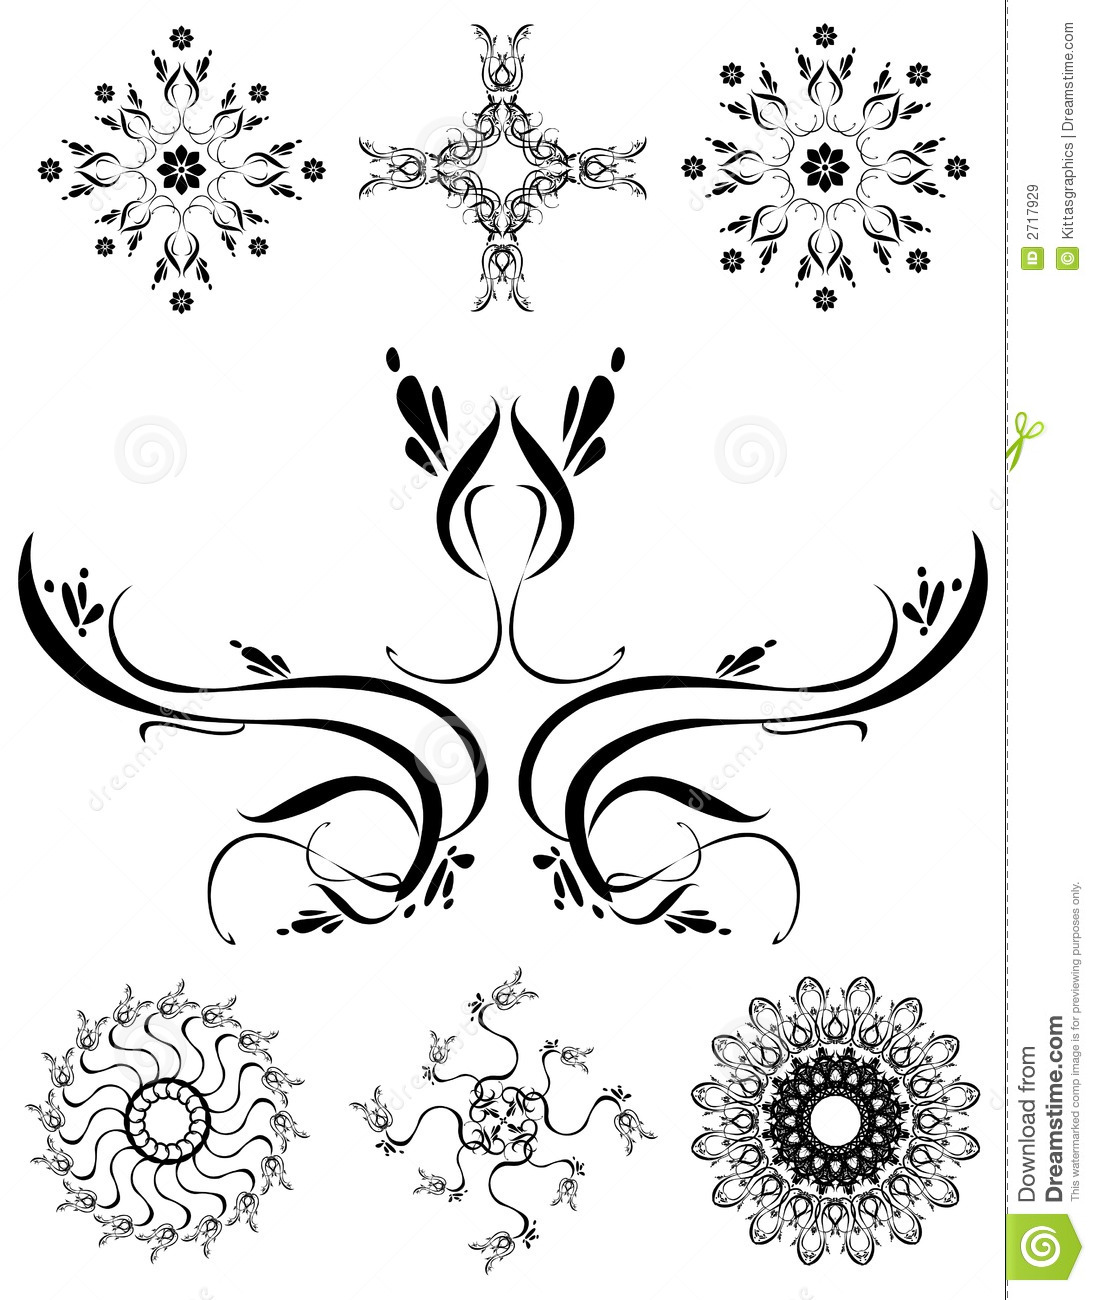 Decorations ornamental art 73 royalty free stock images for Art for decoration and ornamentation